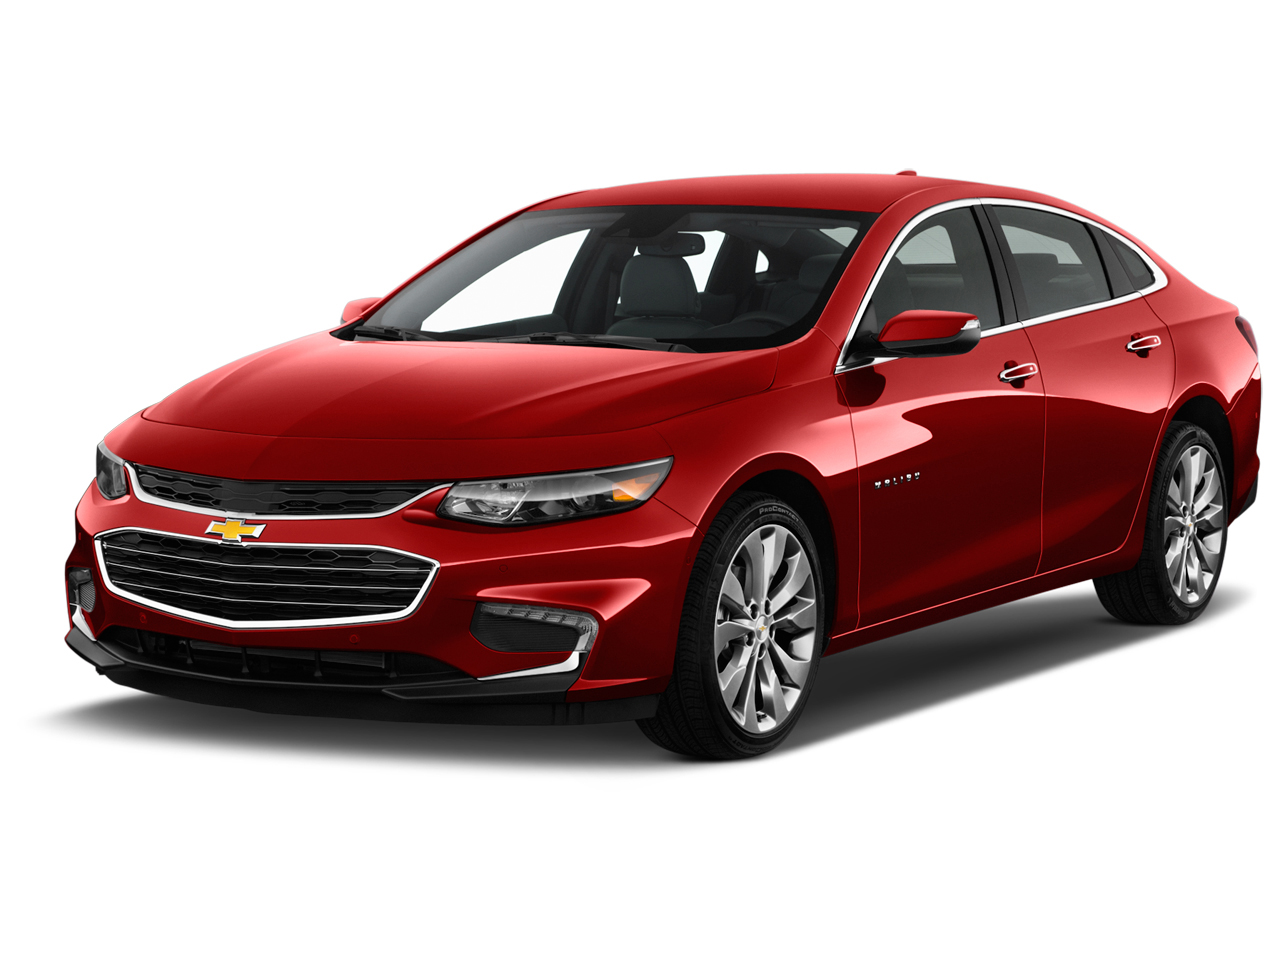 Chevrolet Malibu 2018 2.5L LT in UAE: New Car Prices ...